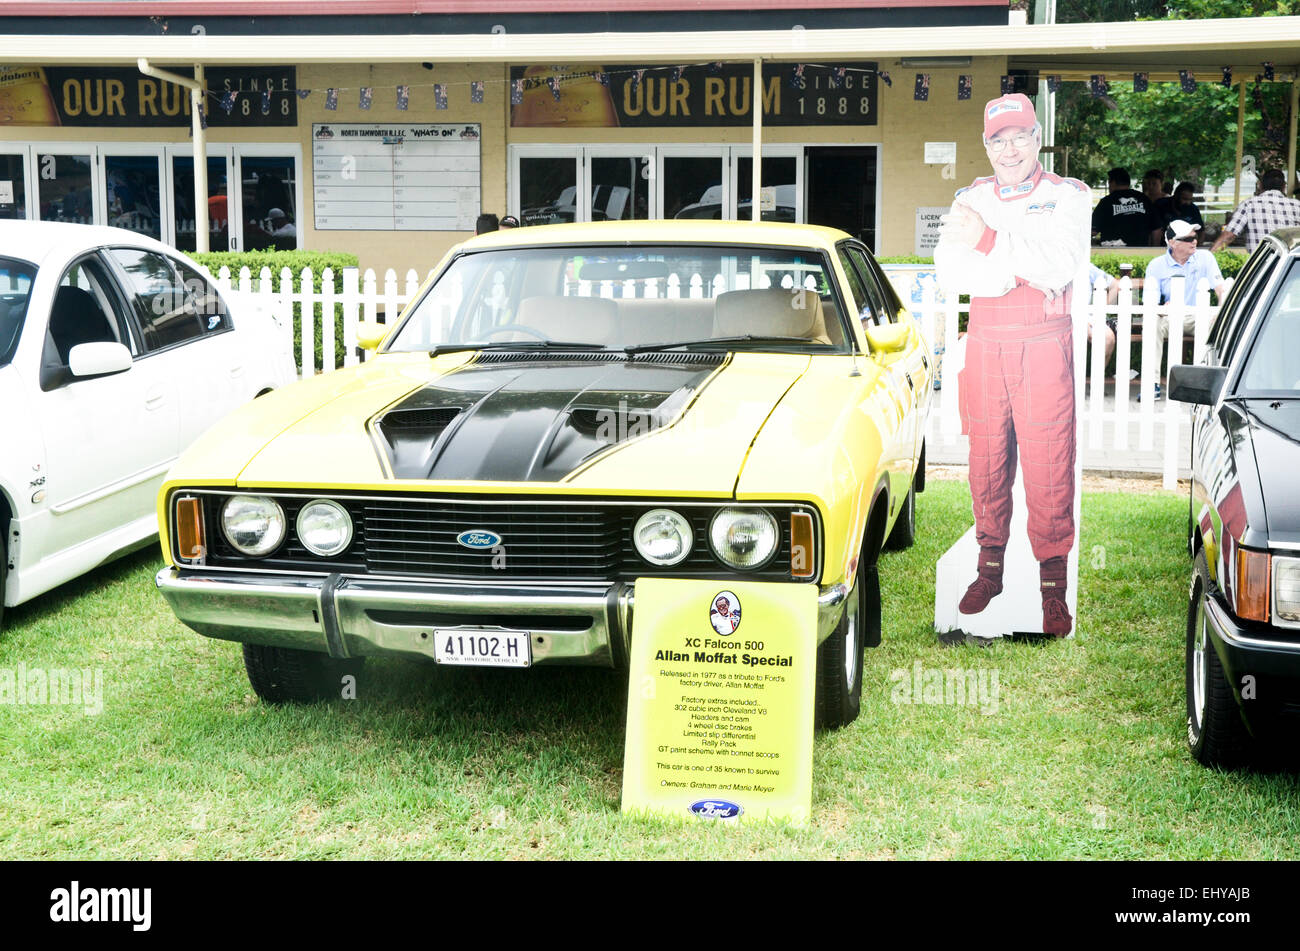 1977 XC Ford Falcon 500 Allen Moffat Special on display in Tamworth